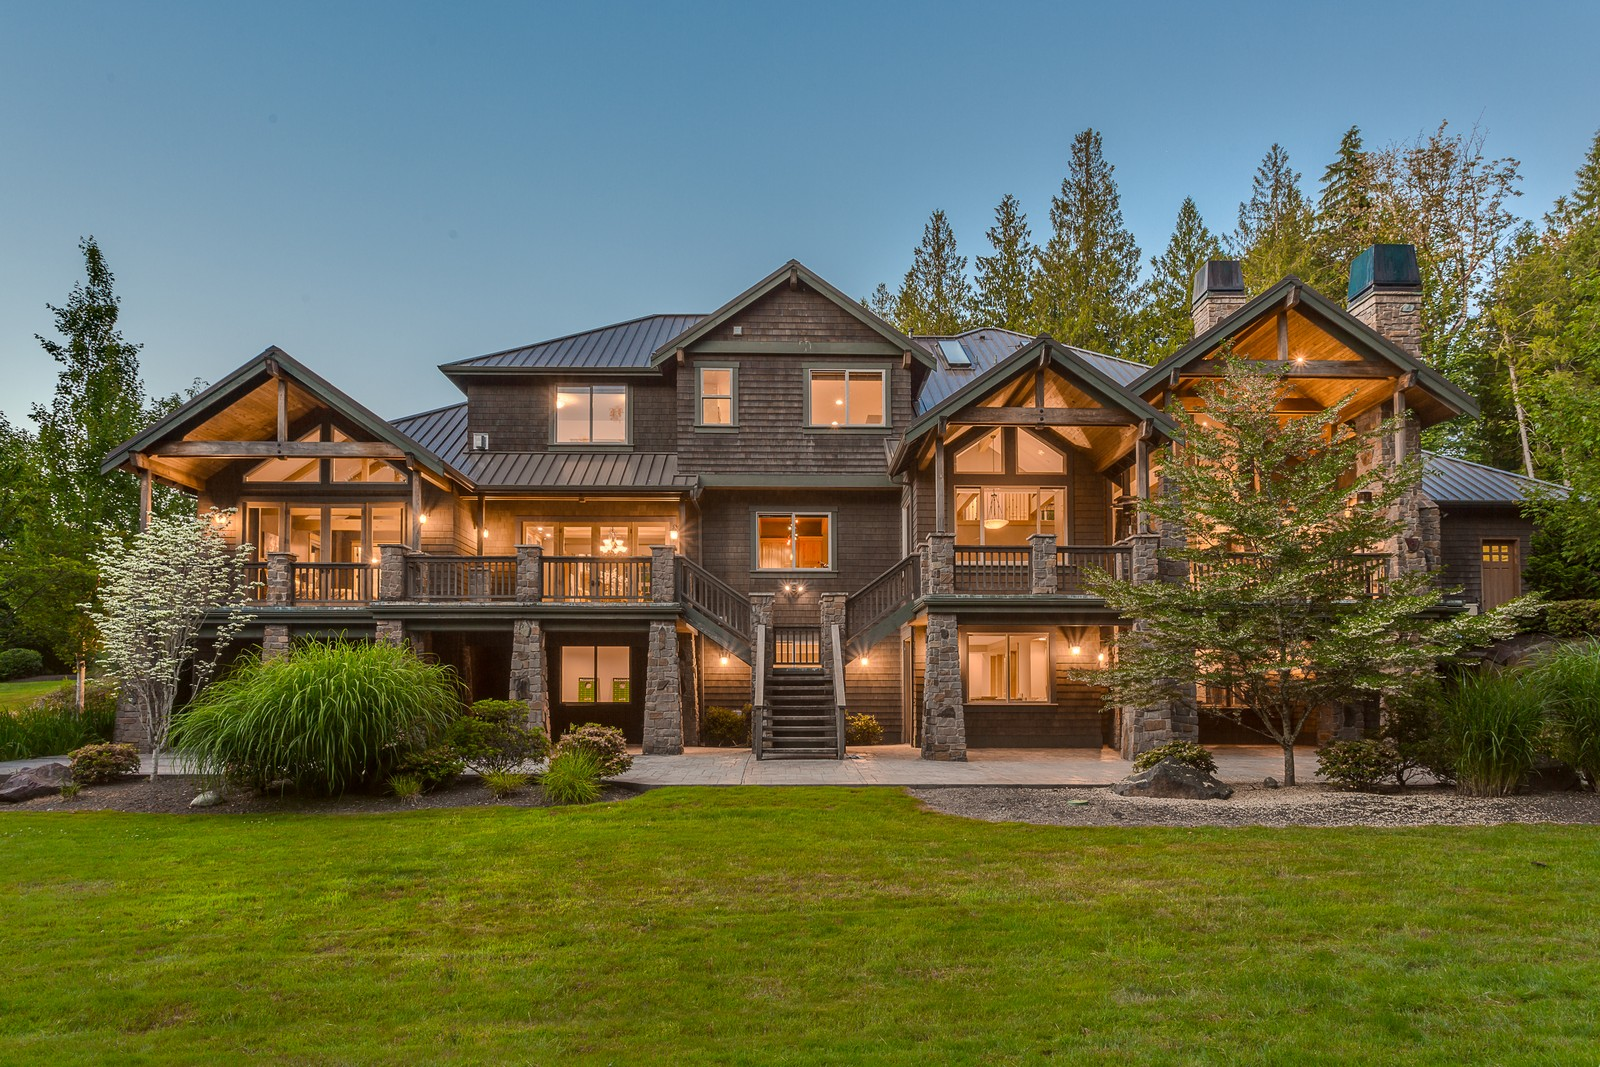 Single Family Home for Sale at The Lodge at Treemont North 29427 SE 15th Place Fall City, Washington 98024 United States